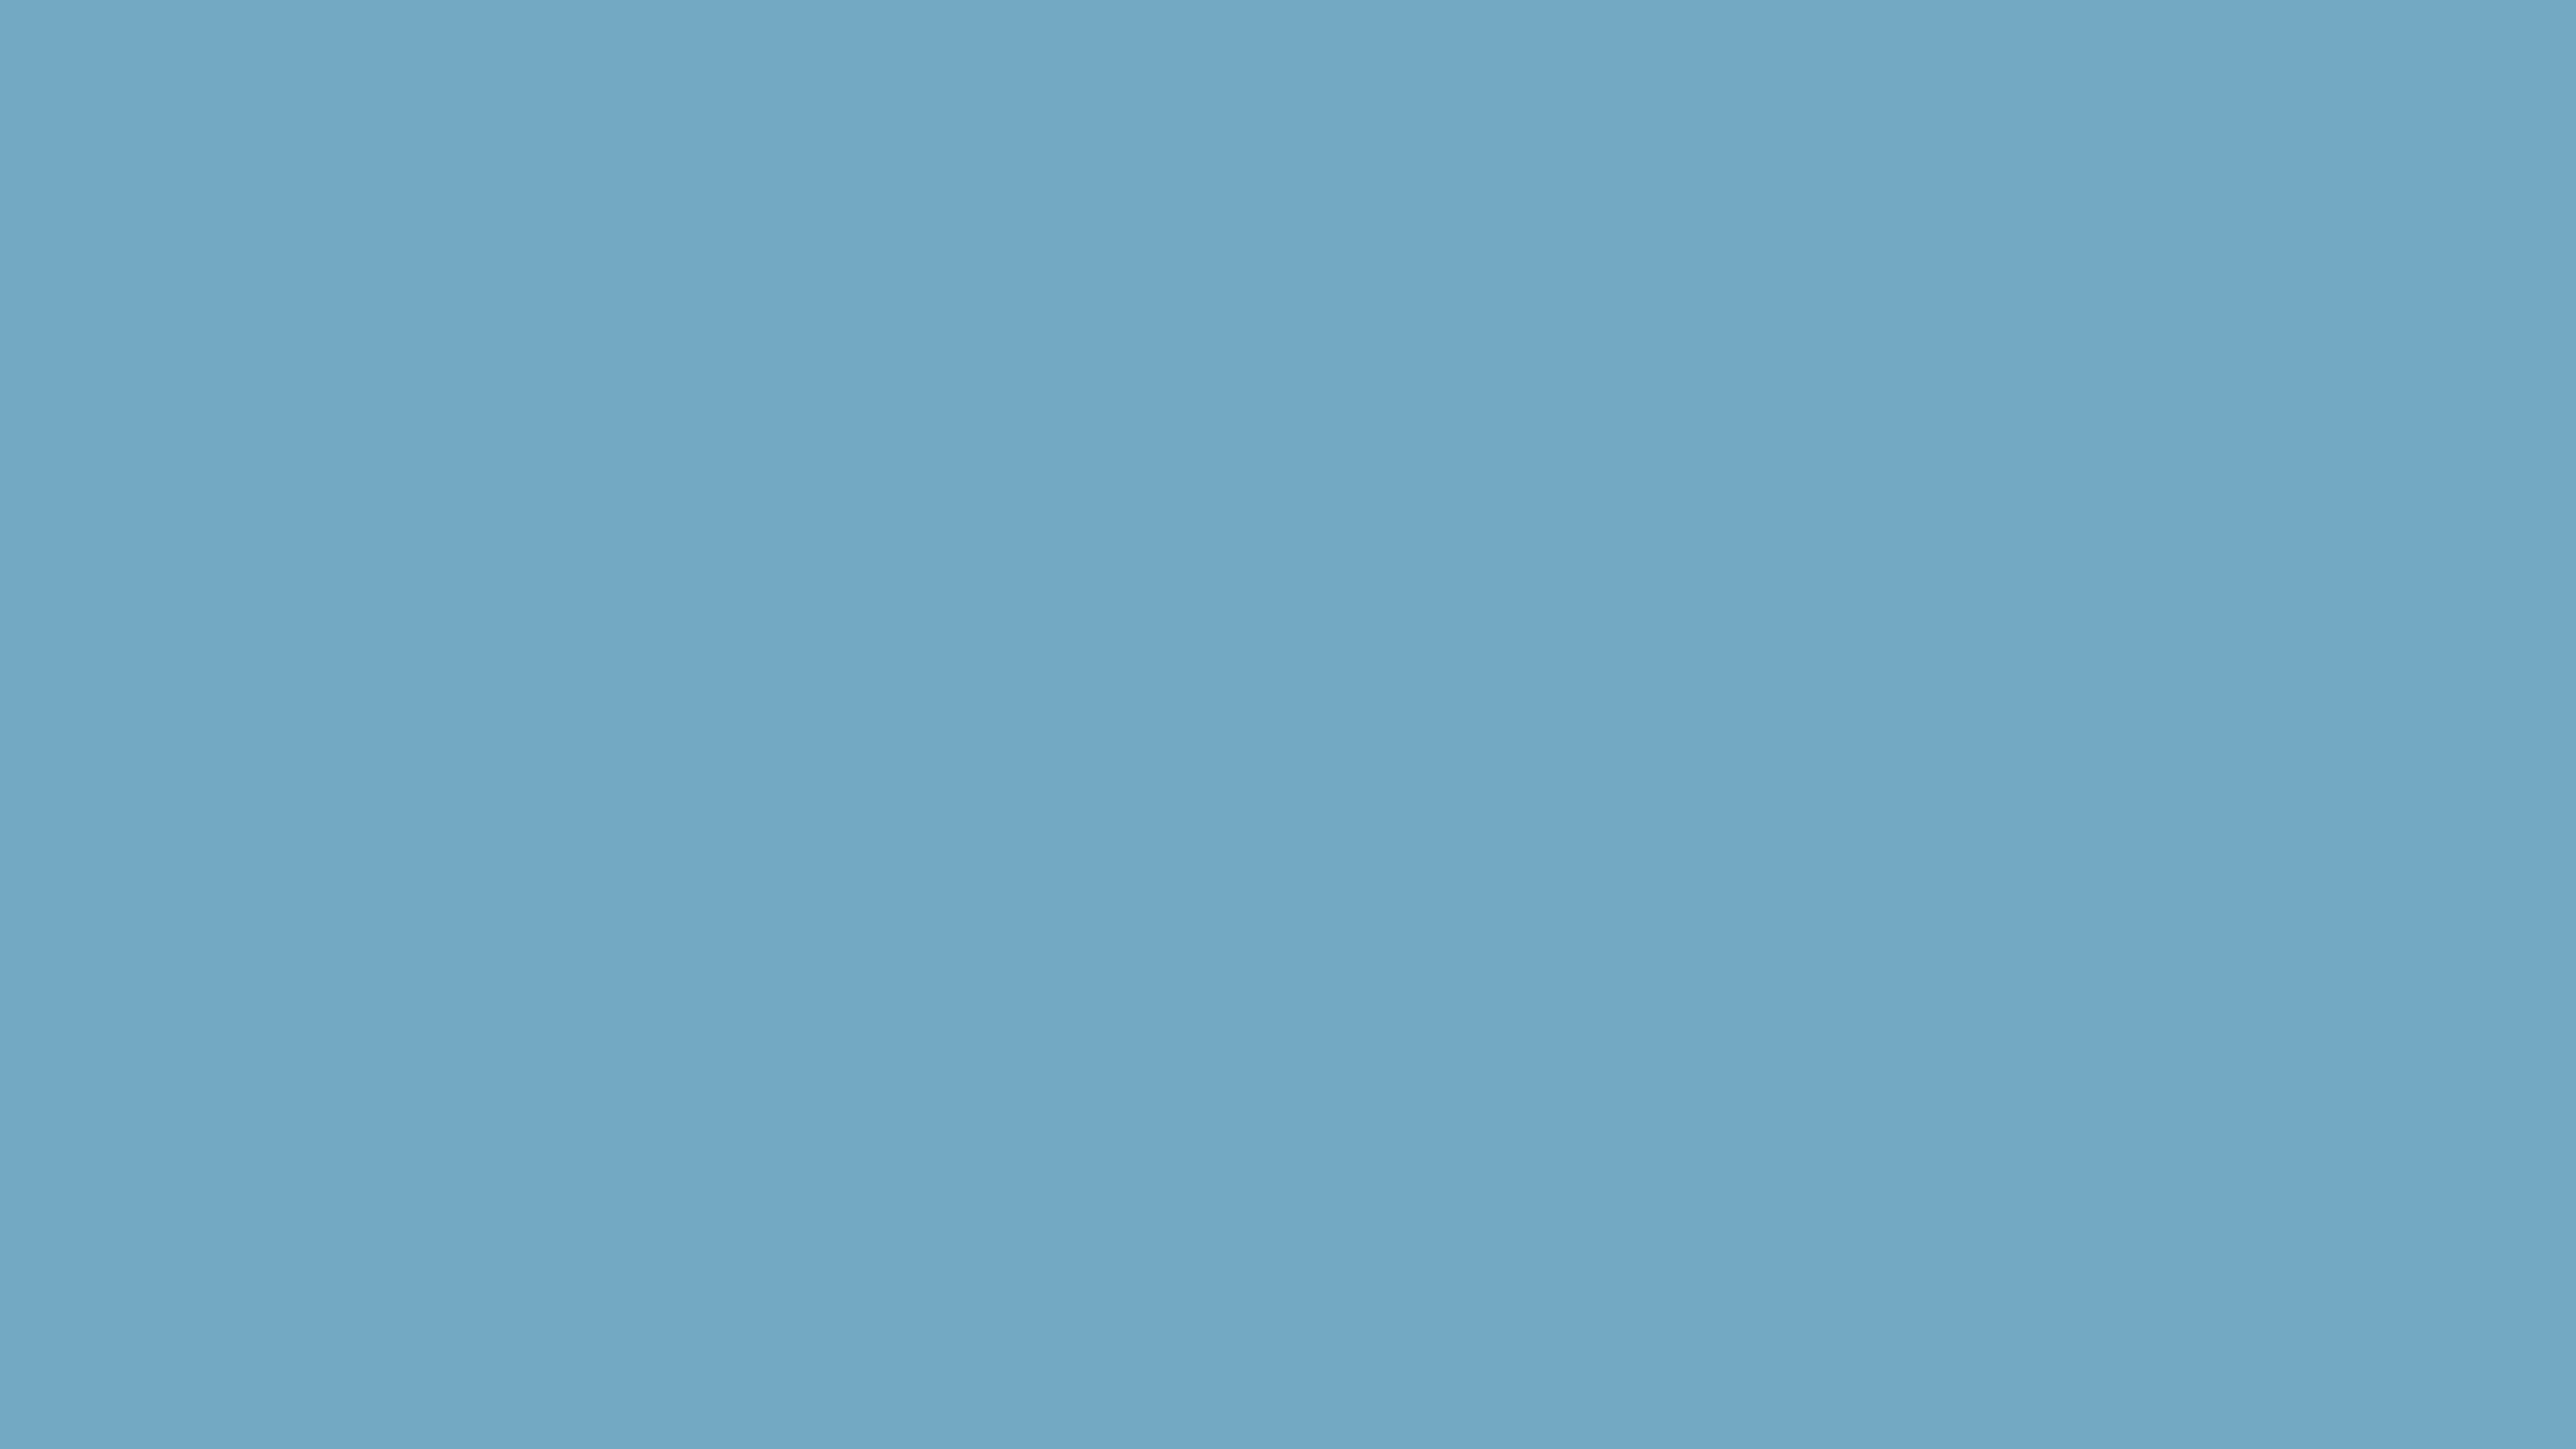 7680x4320 Moonstone Blue Solid Color Background